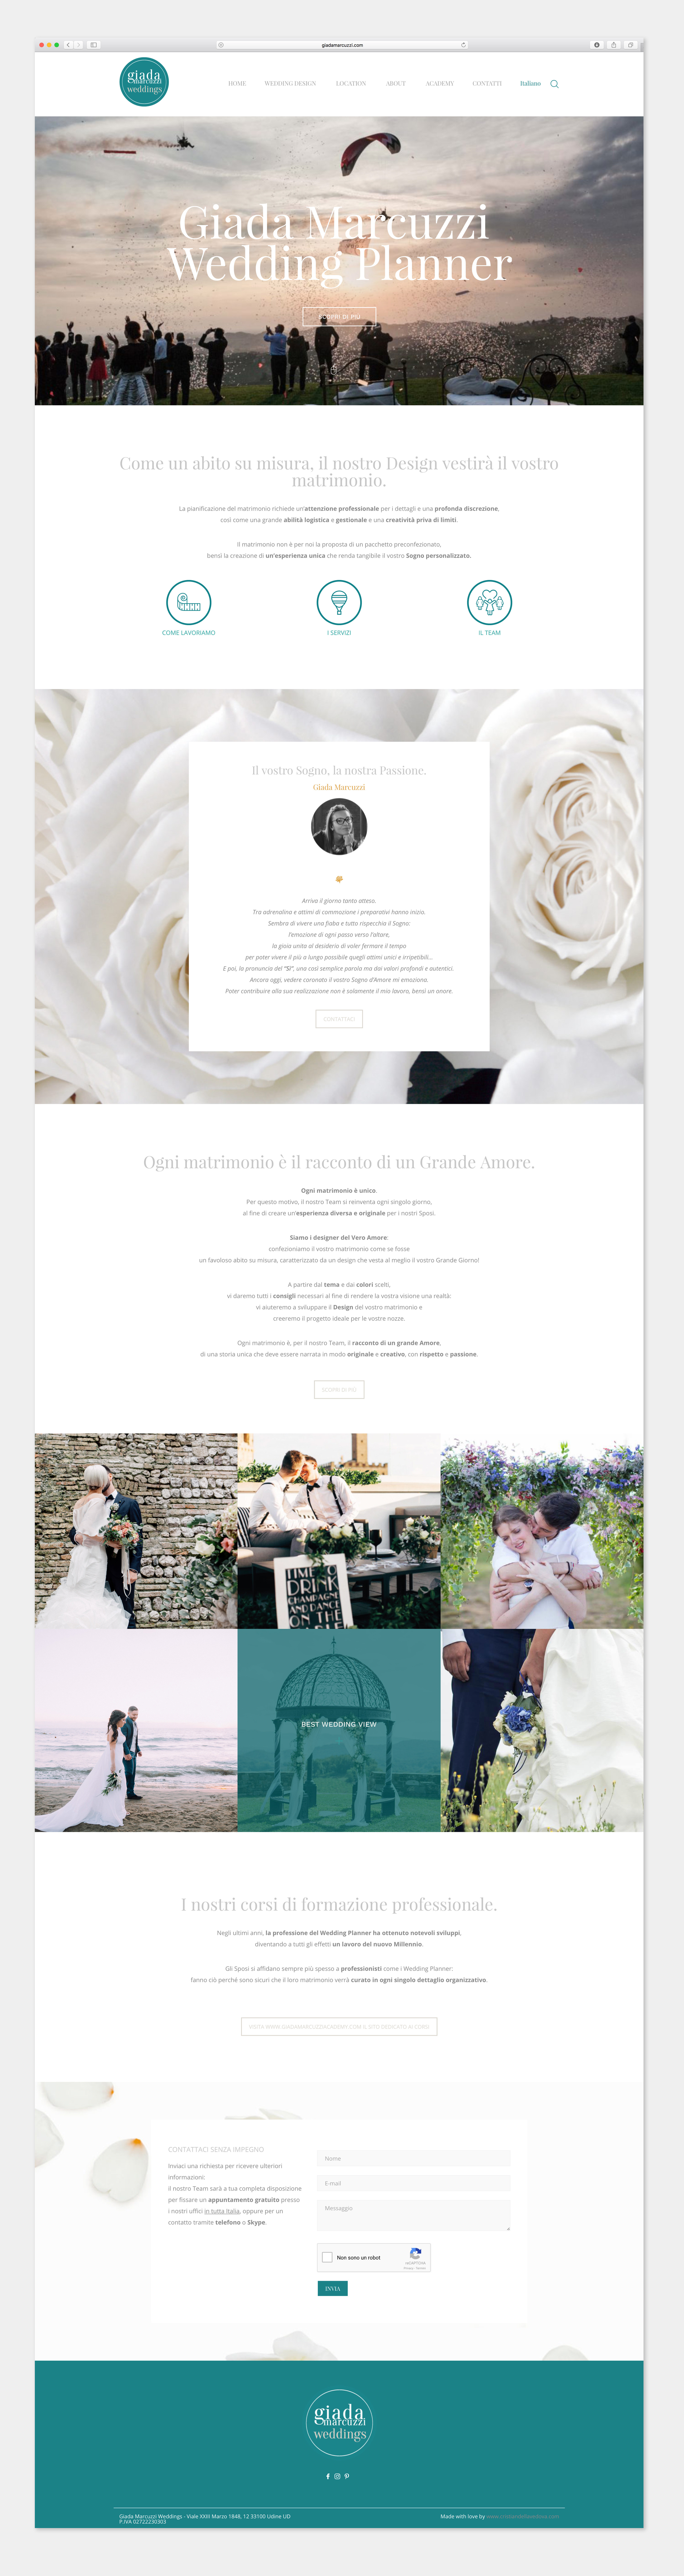 Giada Marcuzzi Weddings